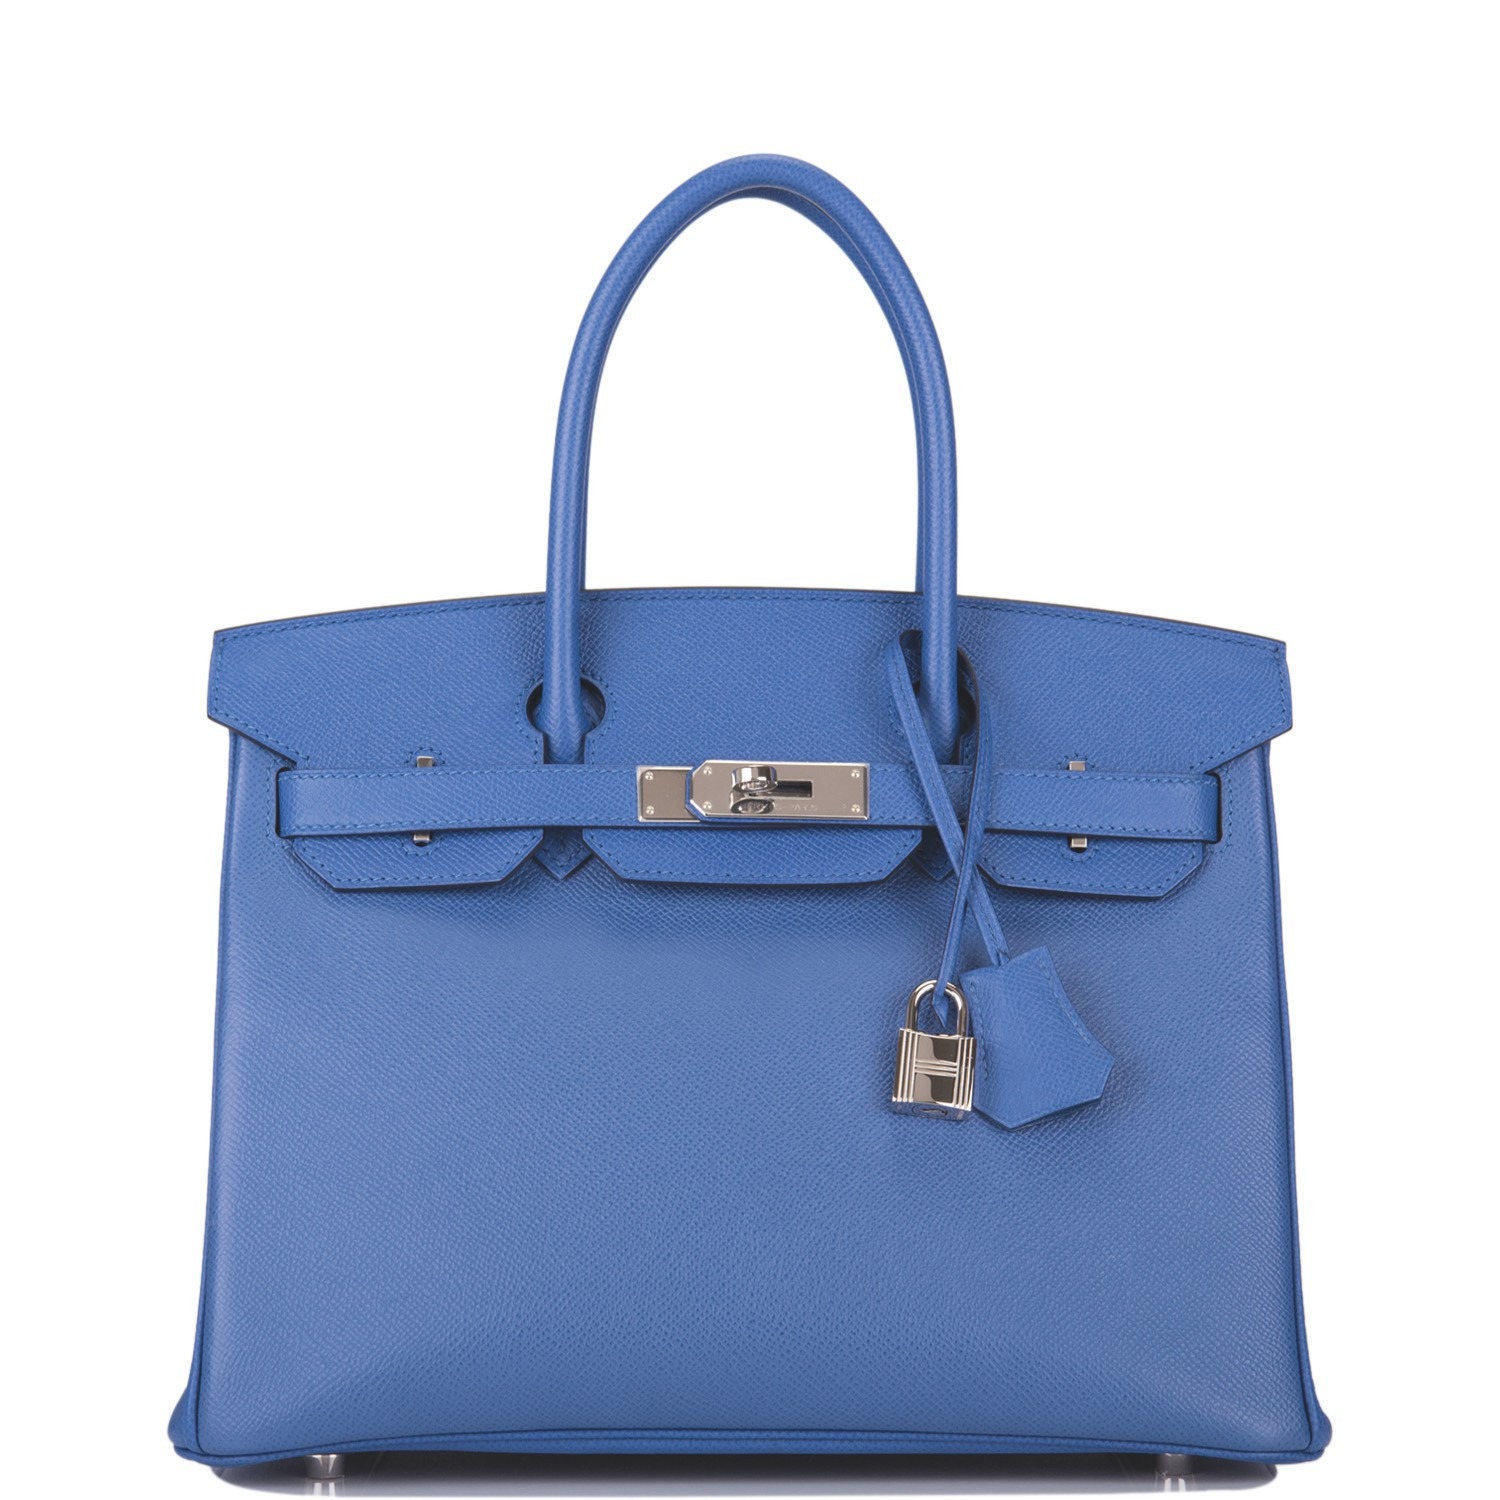 Hermès Bleu Brighton Birkin 30cm of Epsom Leather with Palladium Hardware